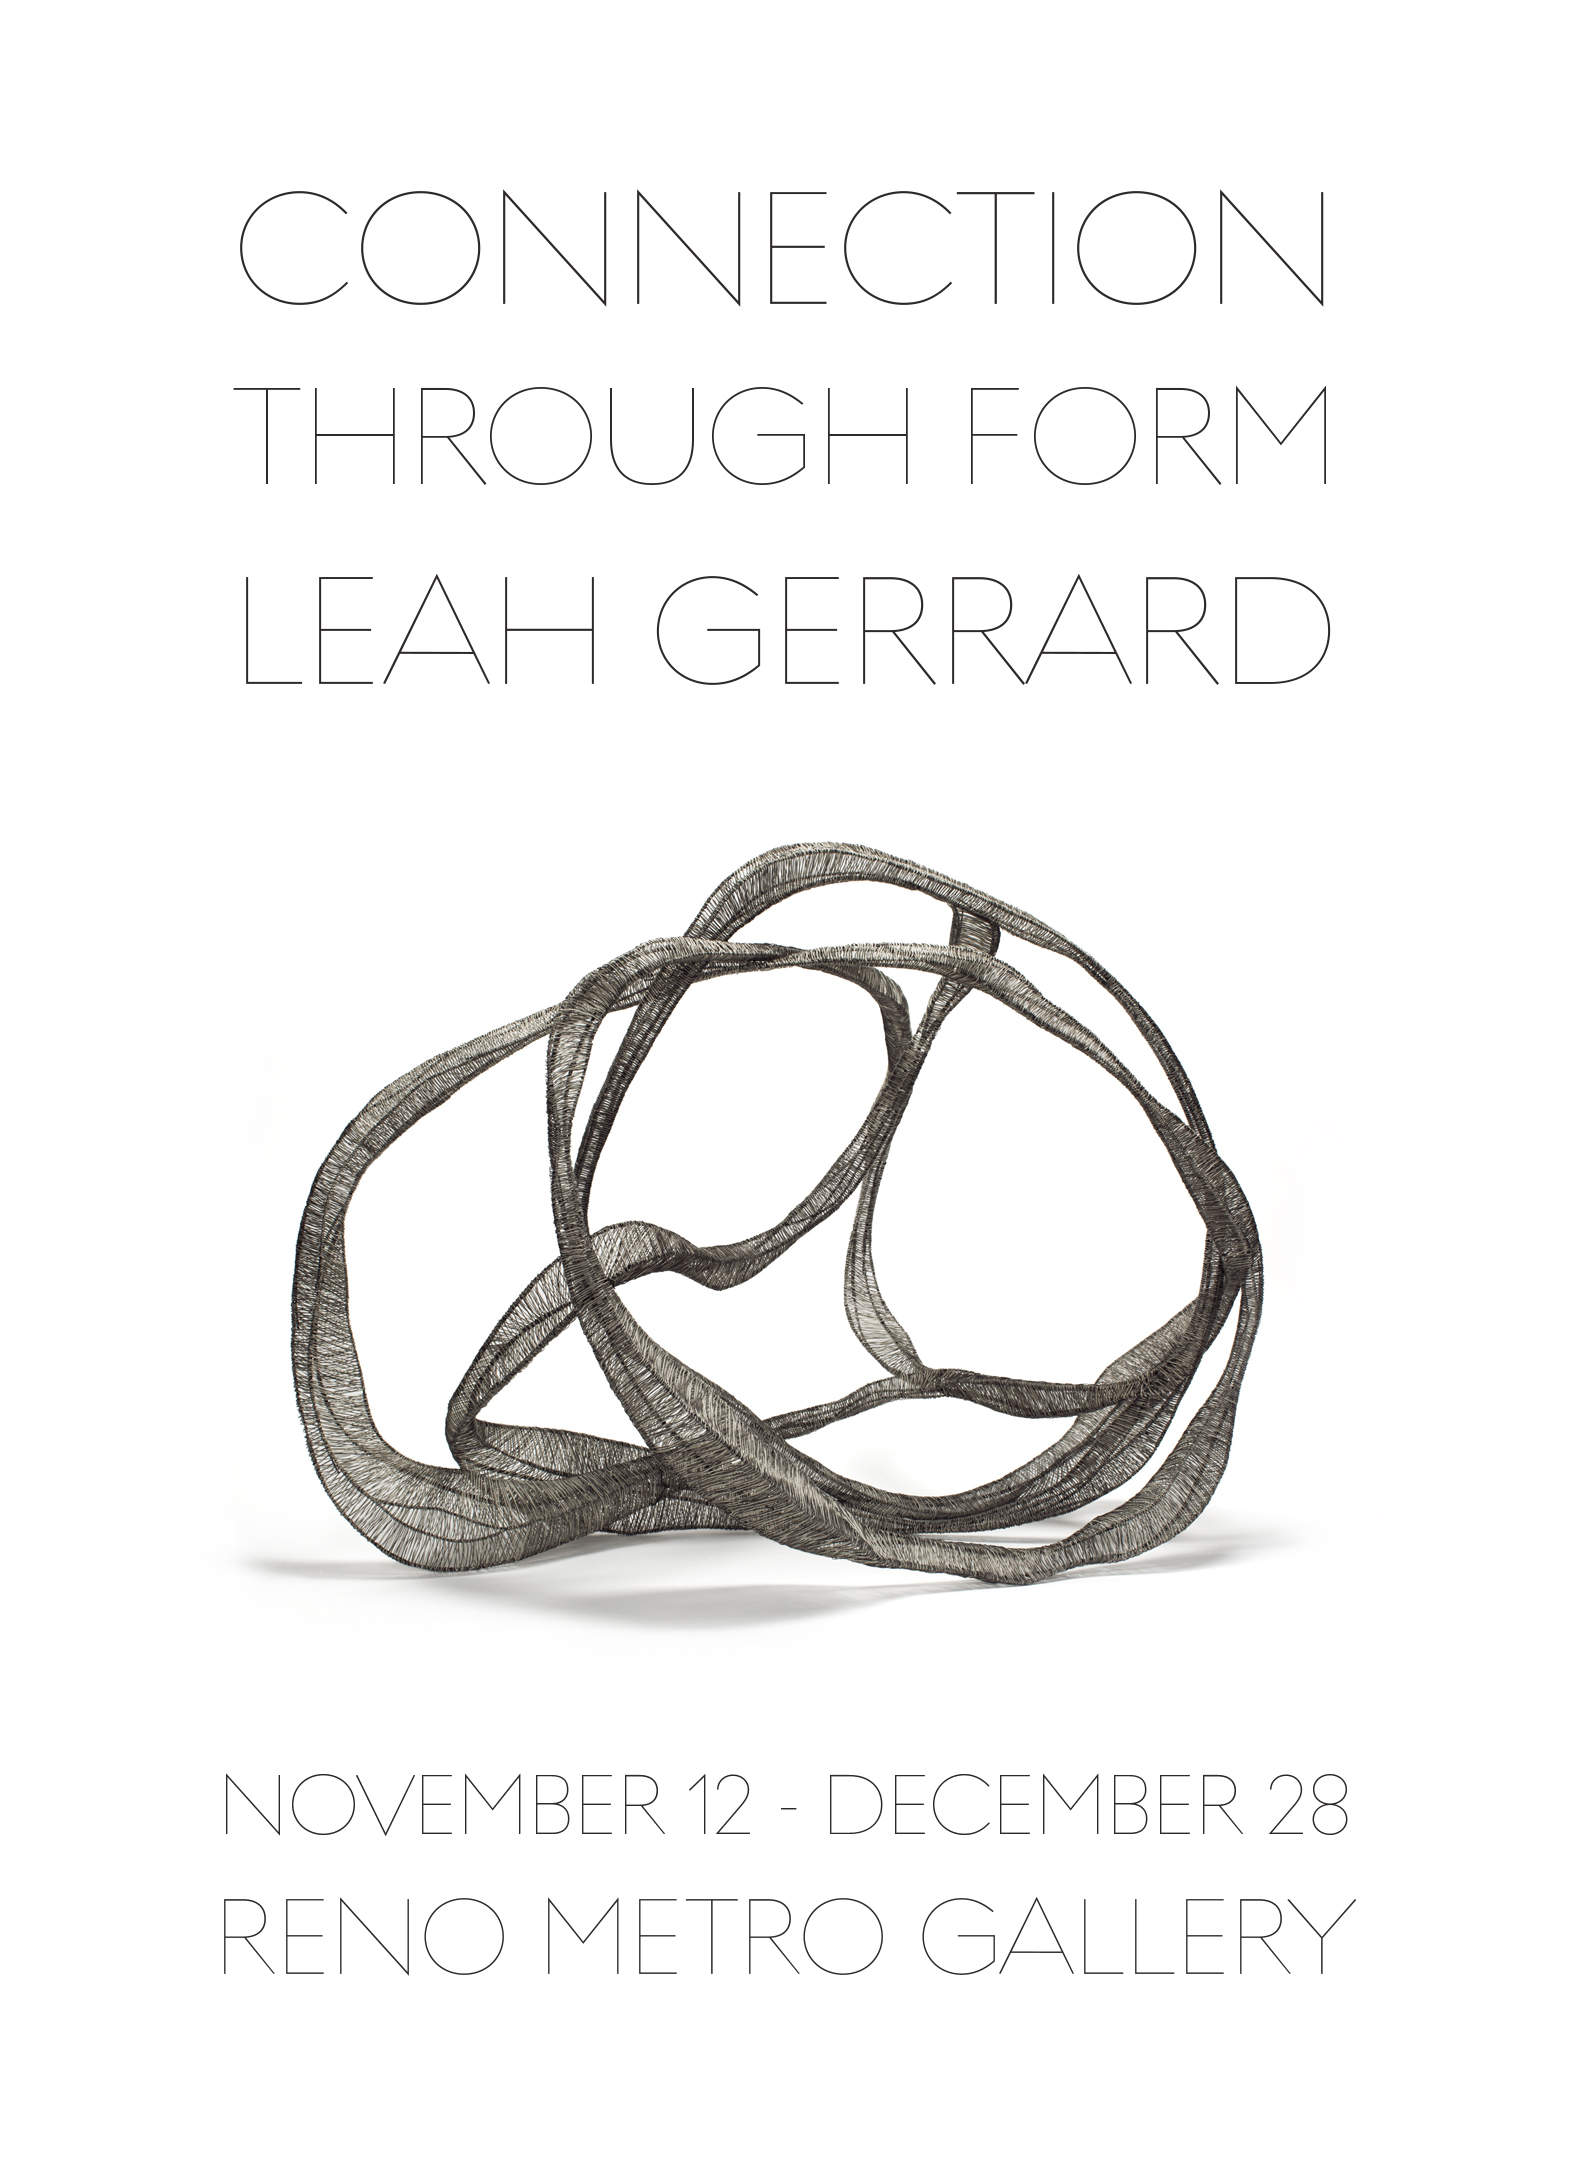 An image of a thin wire sculpture that loops and twines in on itself.  Connection Through Form. Works by Leah Gerrard. November 12 to December 28.  Reno City Hall Metro Gallery.